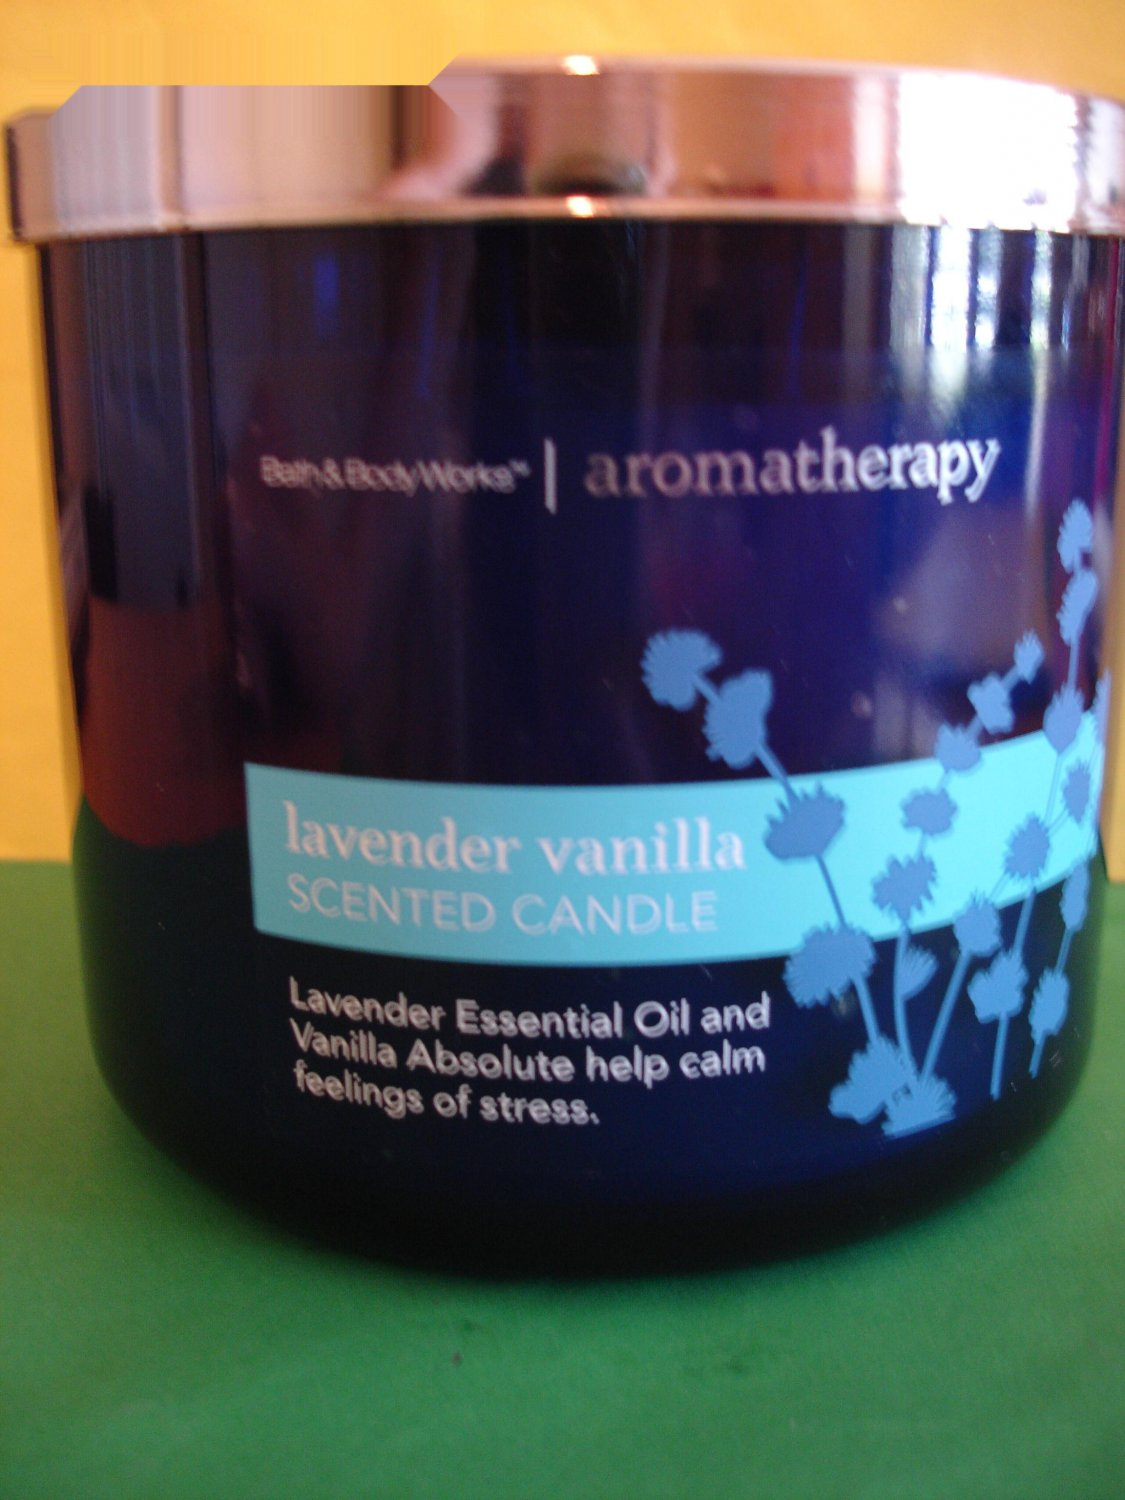 Bath Amp Body Works Aromatherapy Lavender Vanilla Candle 3 Wick